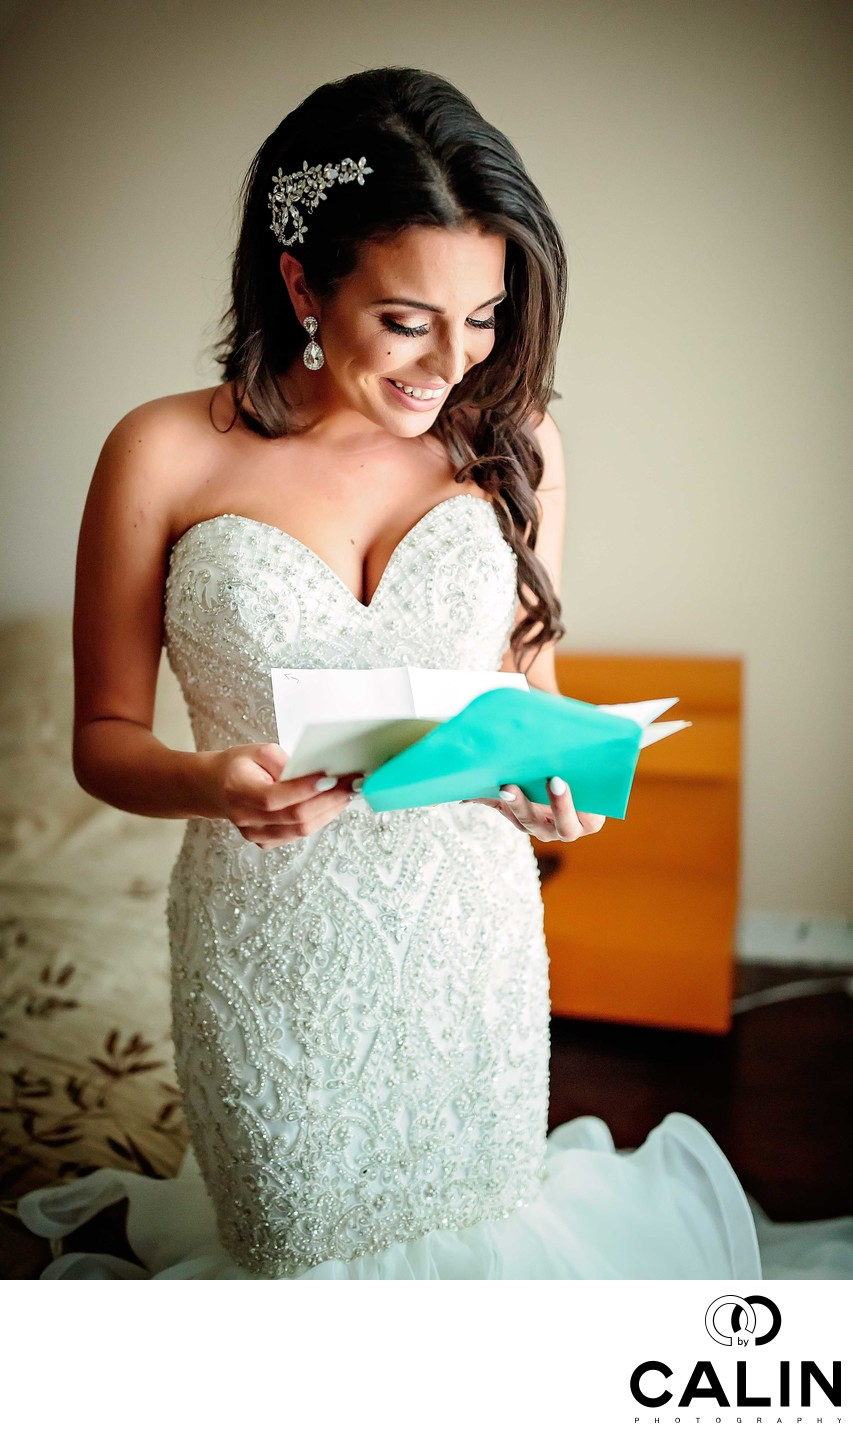 Bride Reads Groom's Letter